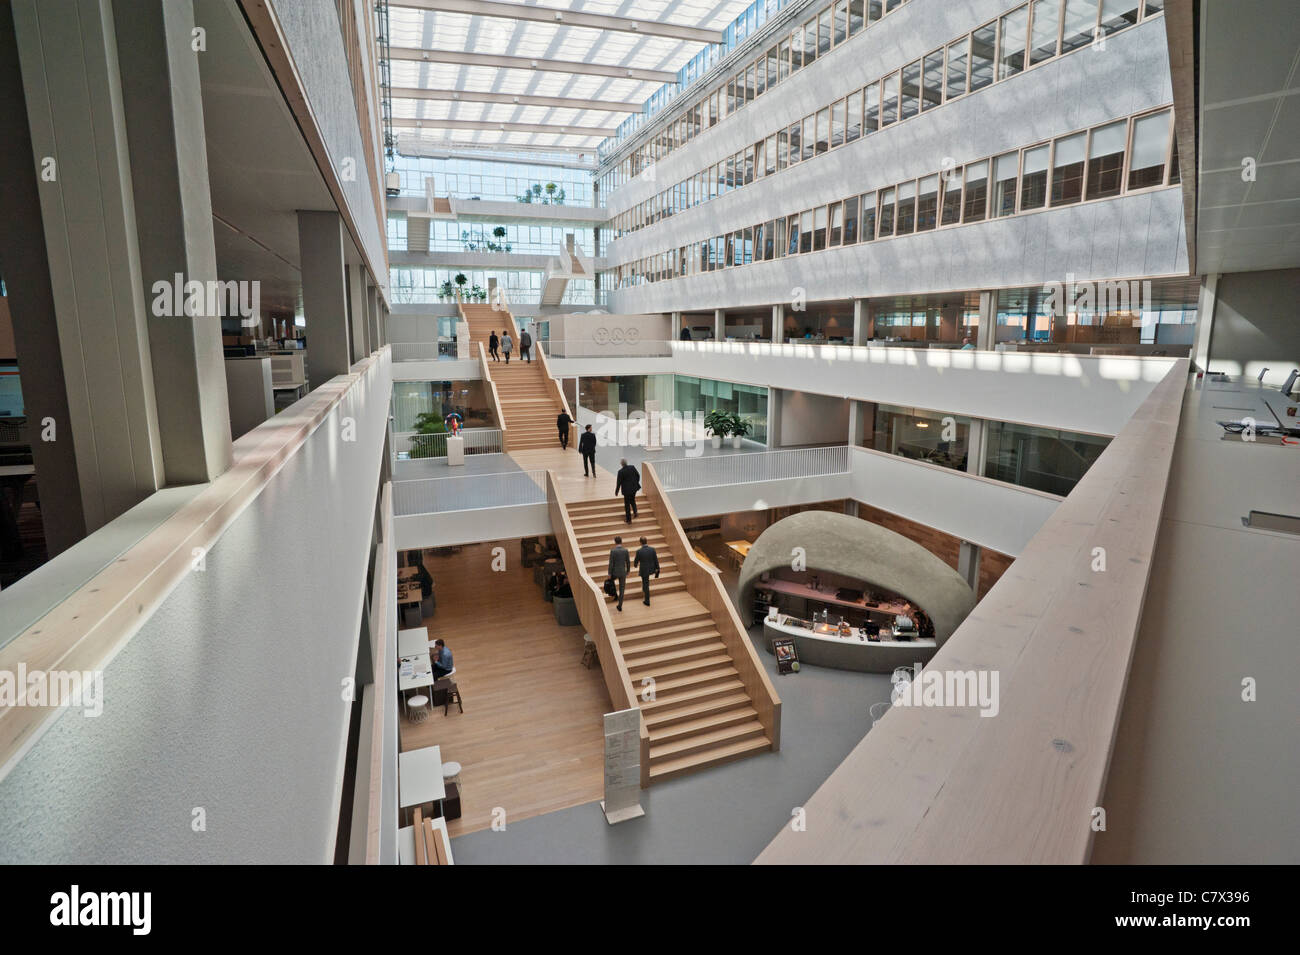 TNT Express' sustainable head office in Hoofddorp, the Netherlands - Stock Image